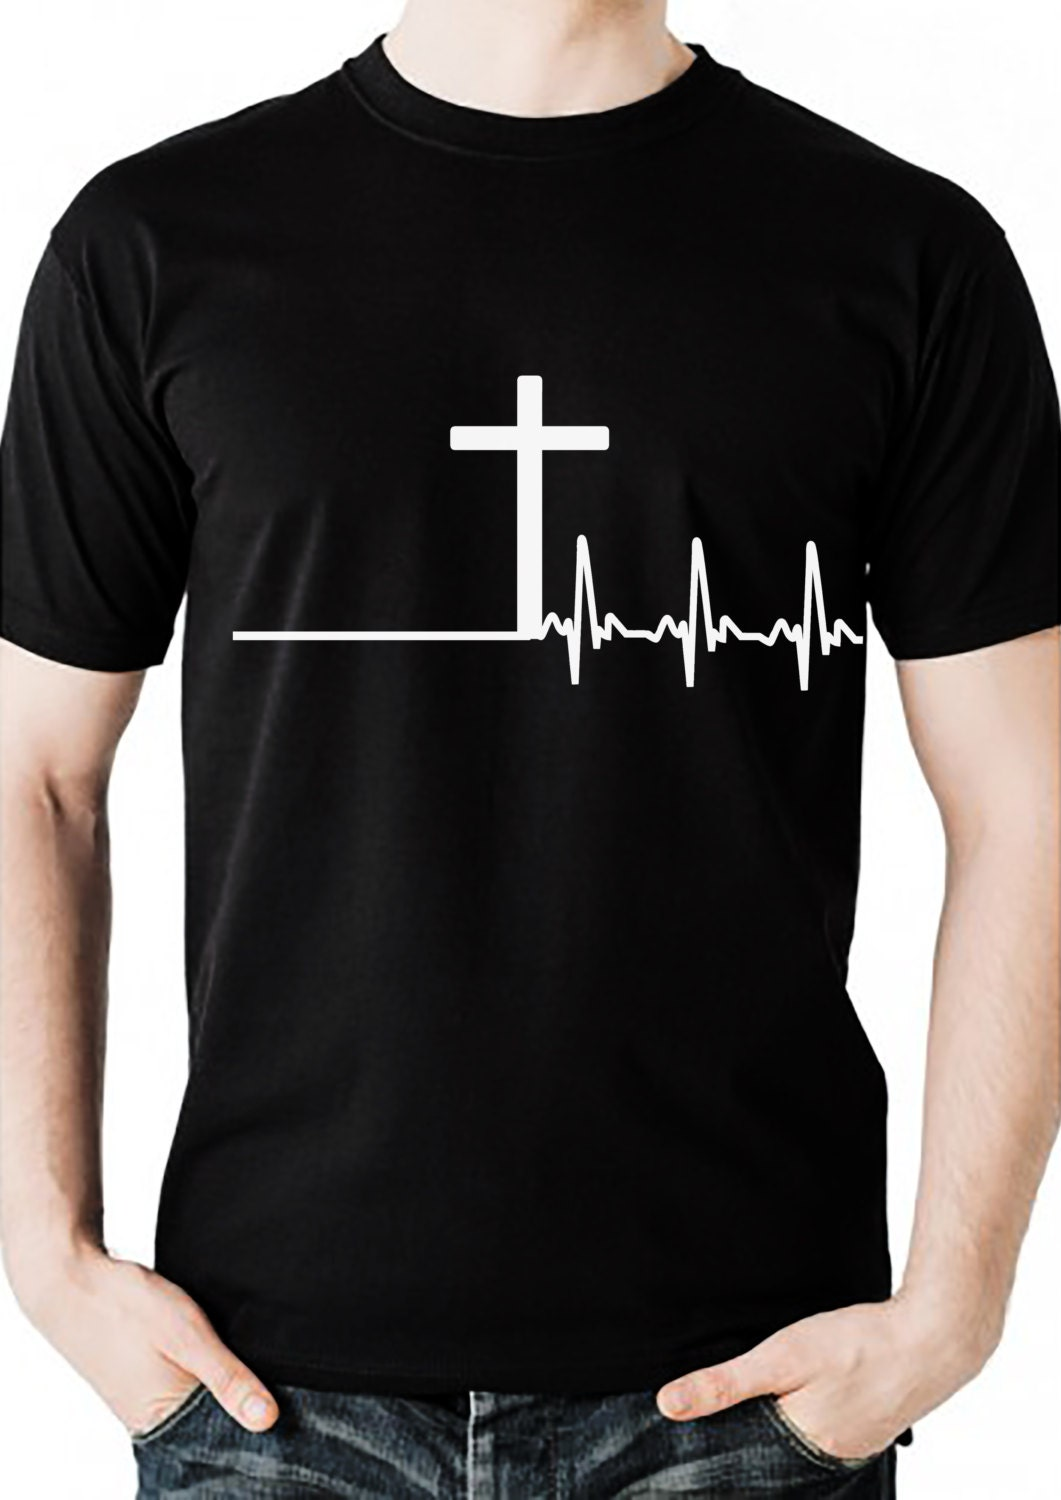 Men S Christian Tshirt With Cross And Heartbeat Design